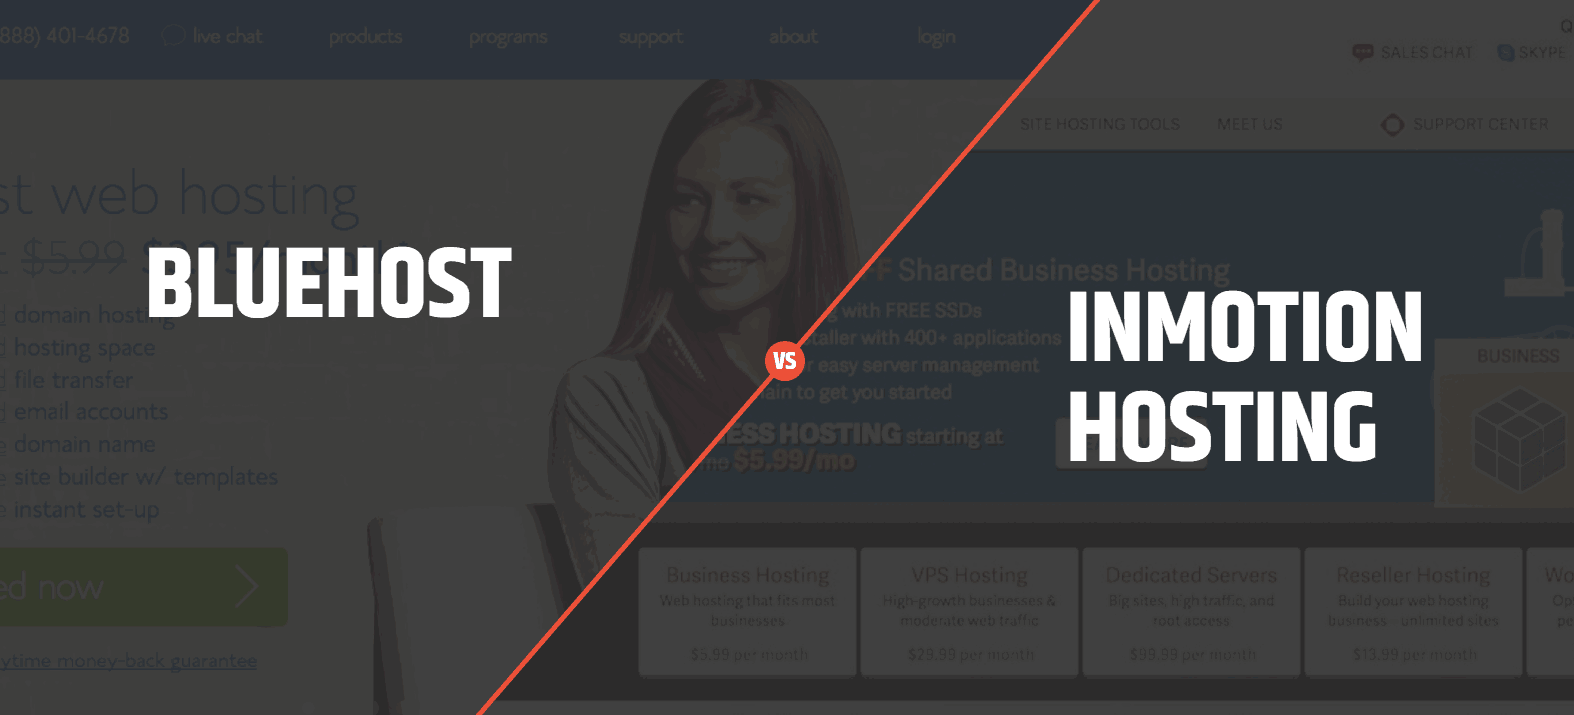 bluehost vs inmotion hosting